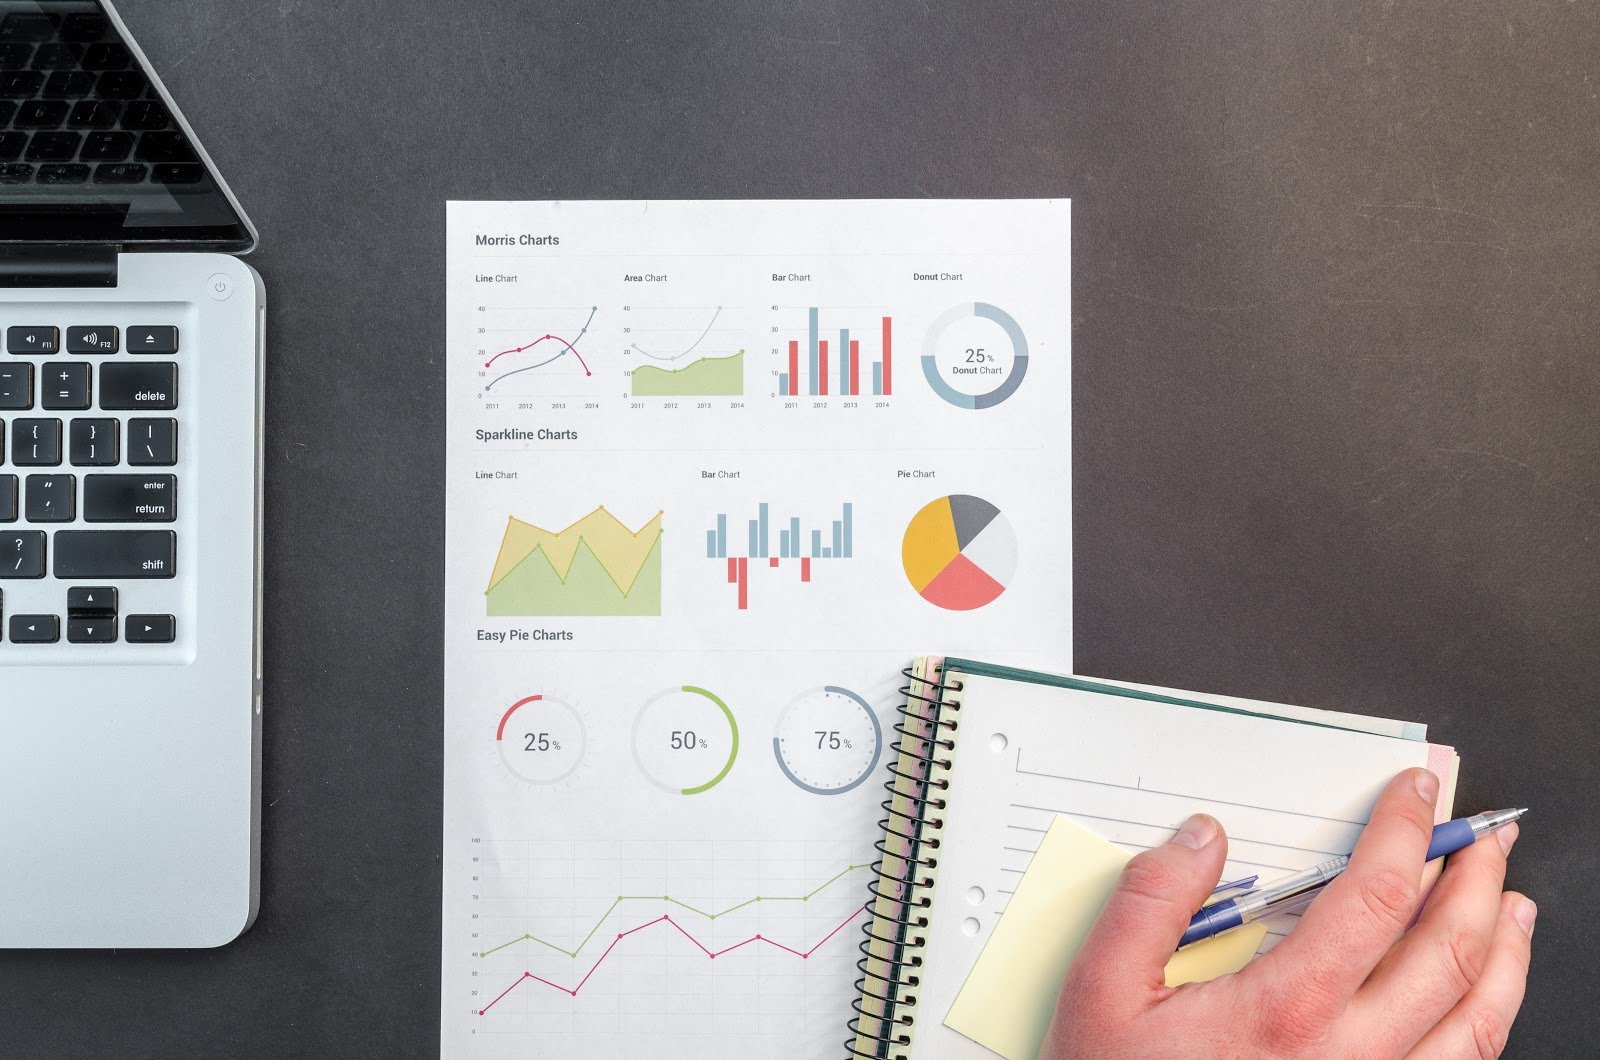 Five Key Items to Include In Your Marketing and Sales Reports to Grow Your Company [with Examples]